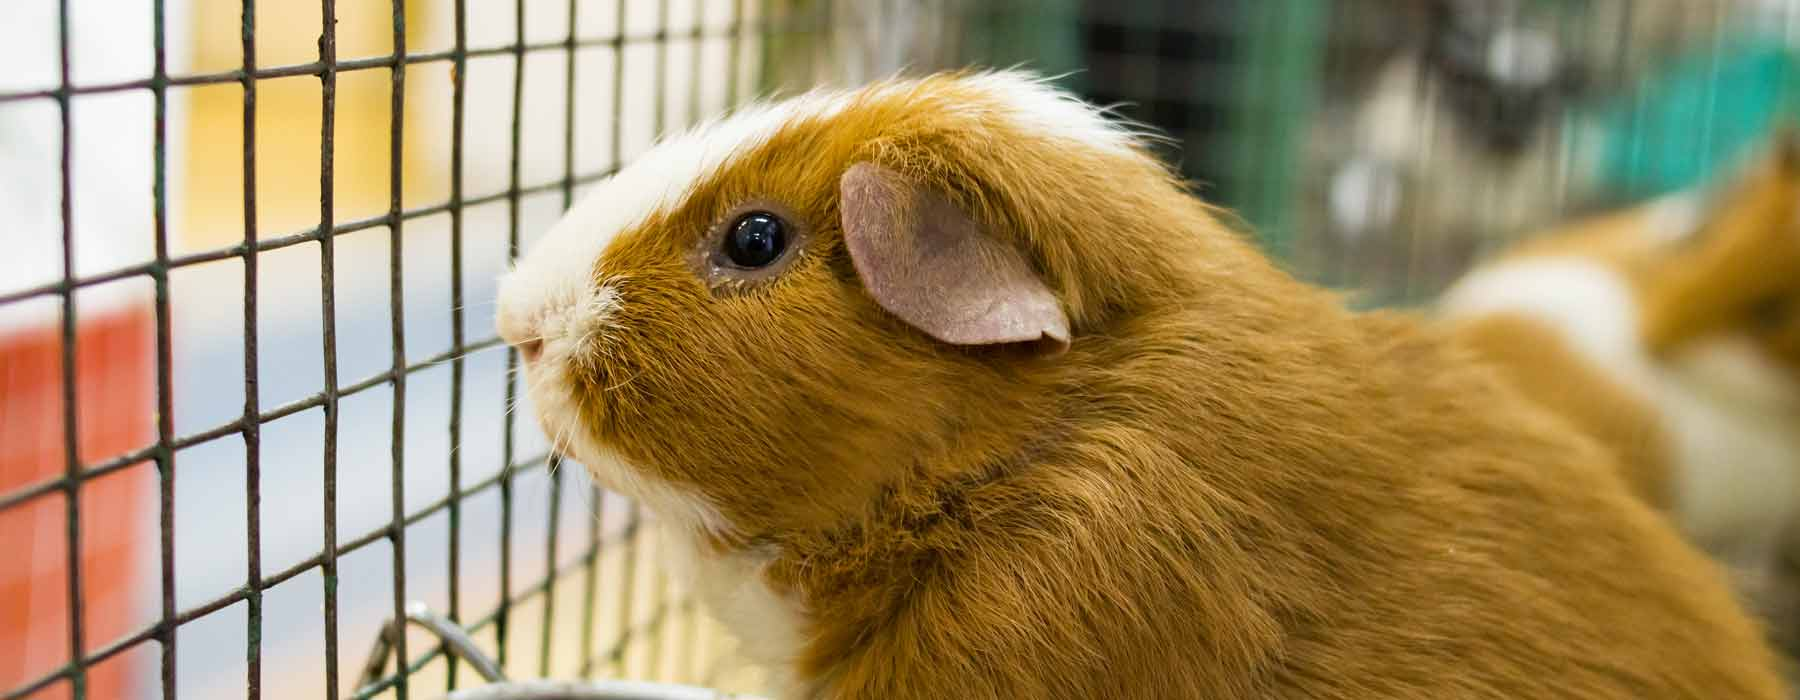 ginger and white guinea pig looking out of his cage